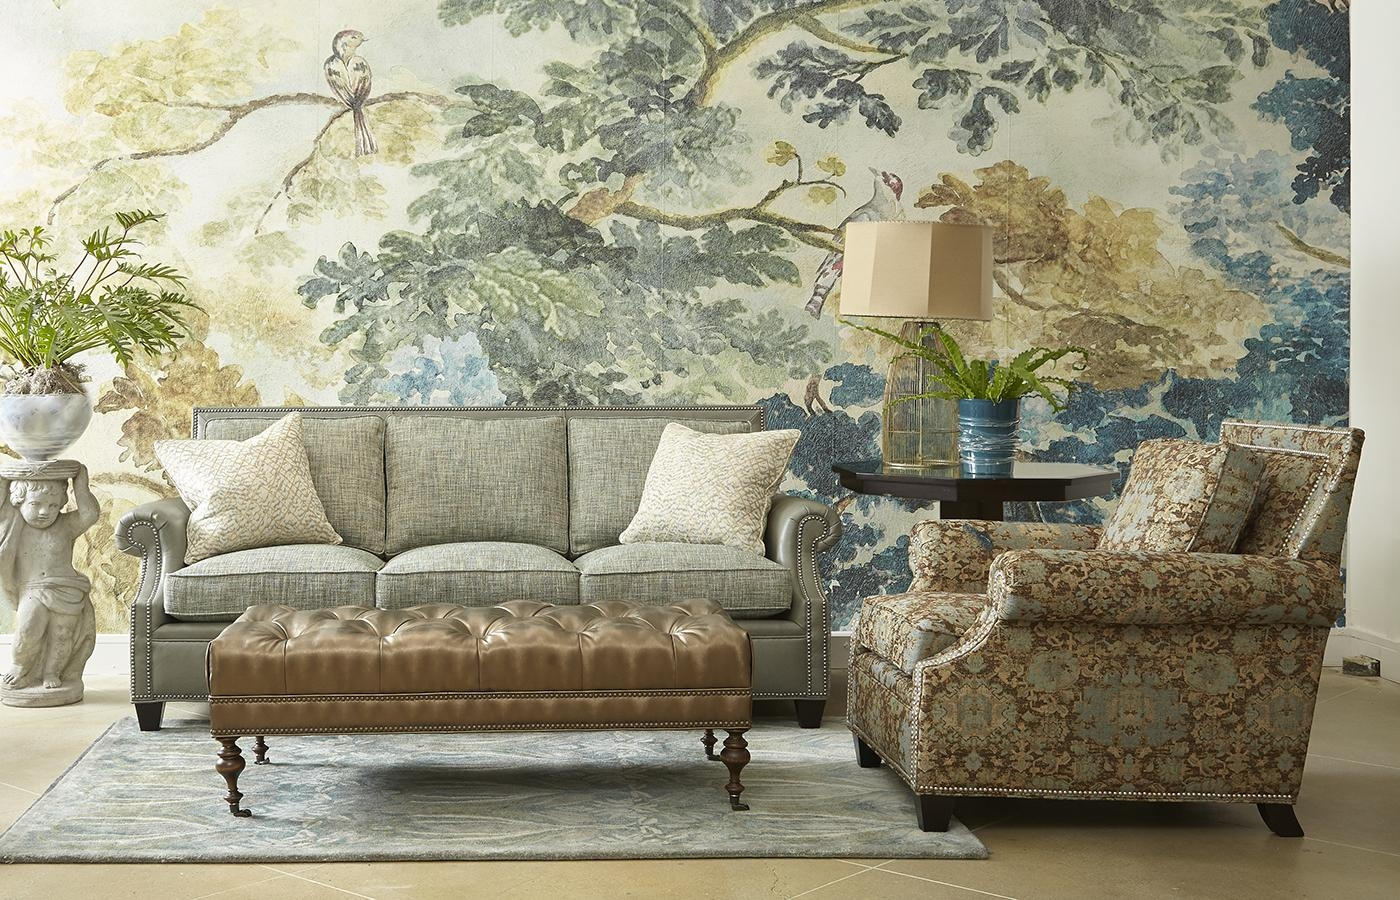 Norwalk Furniture In Norwalk Sofa And Chairs (View 17 of 20)